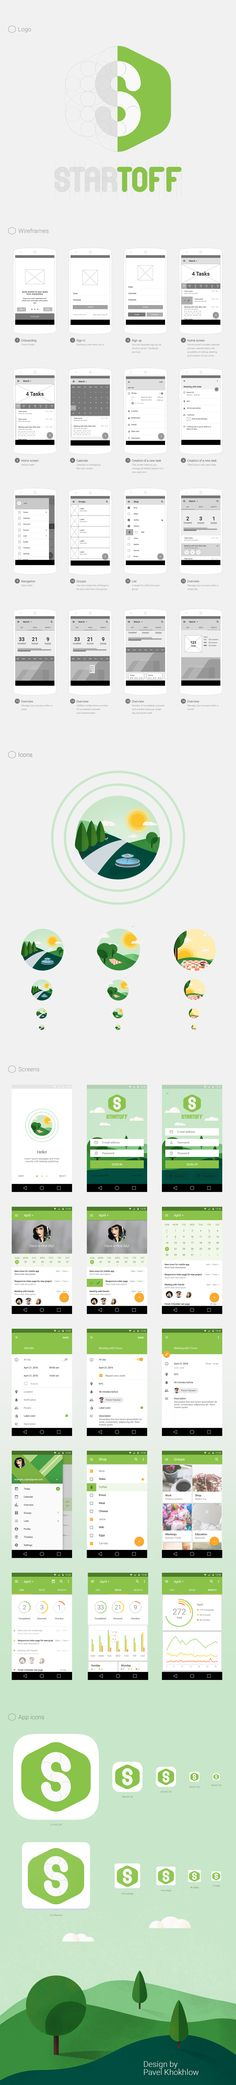 Startoff to-do app on Behance